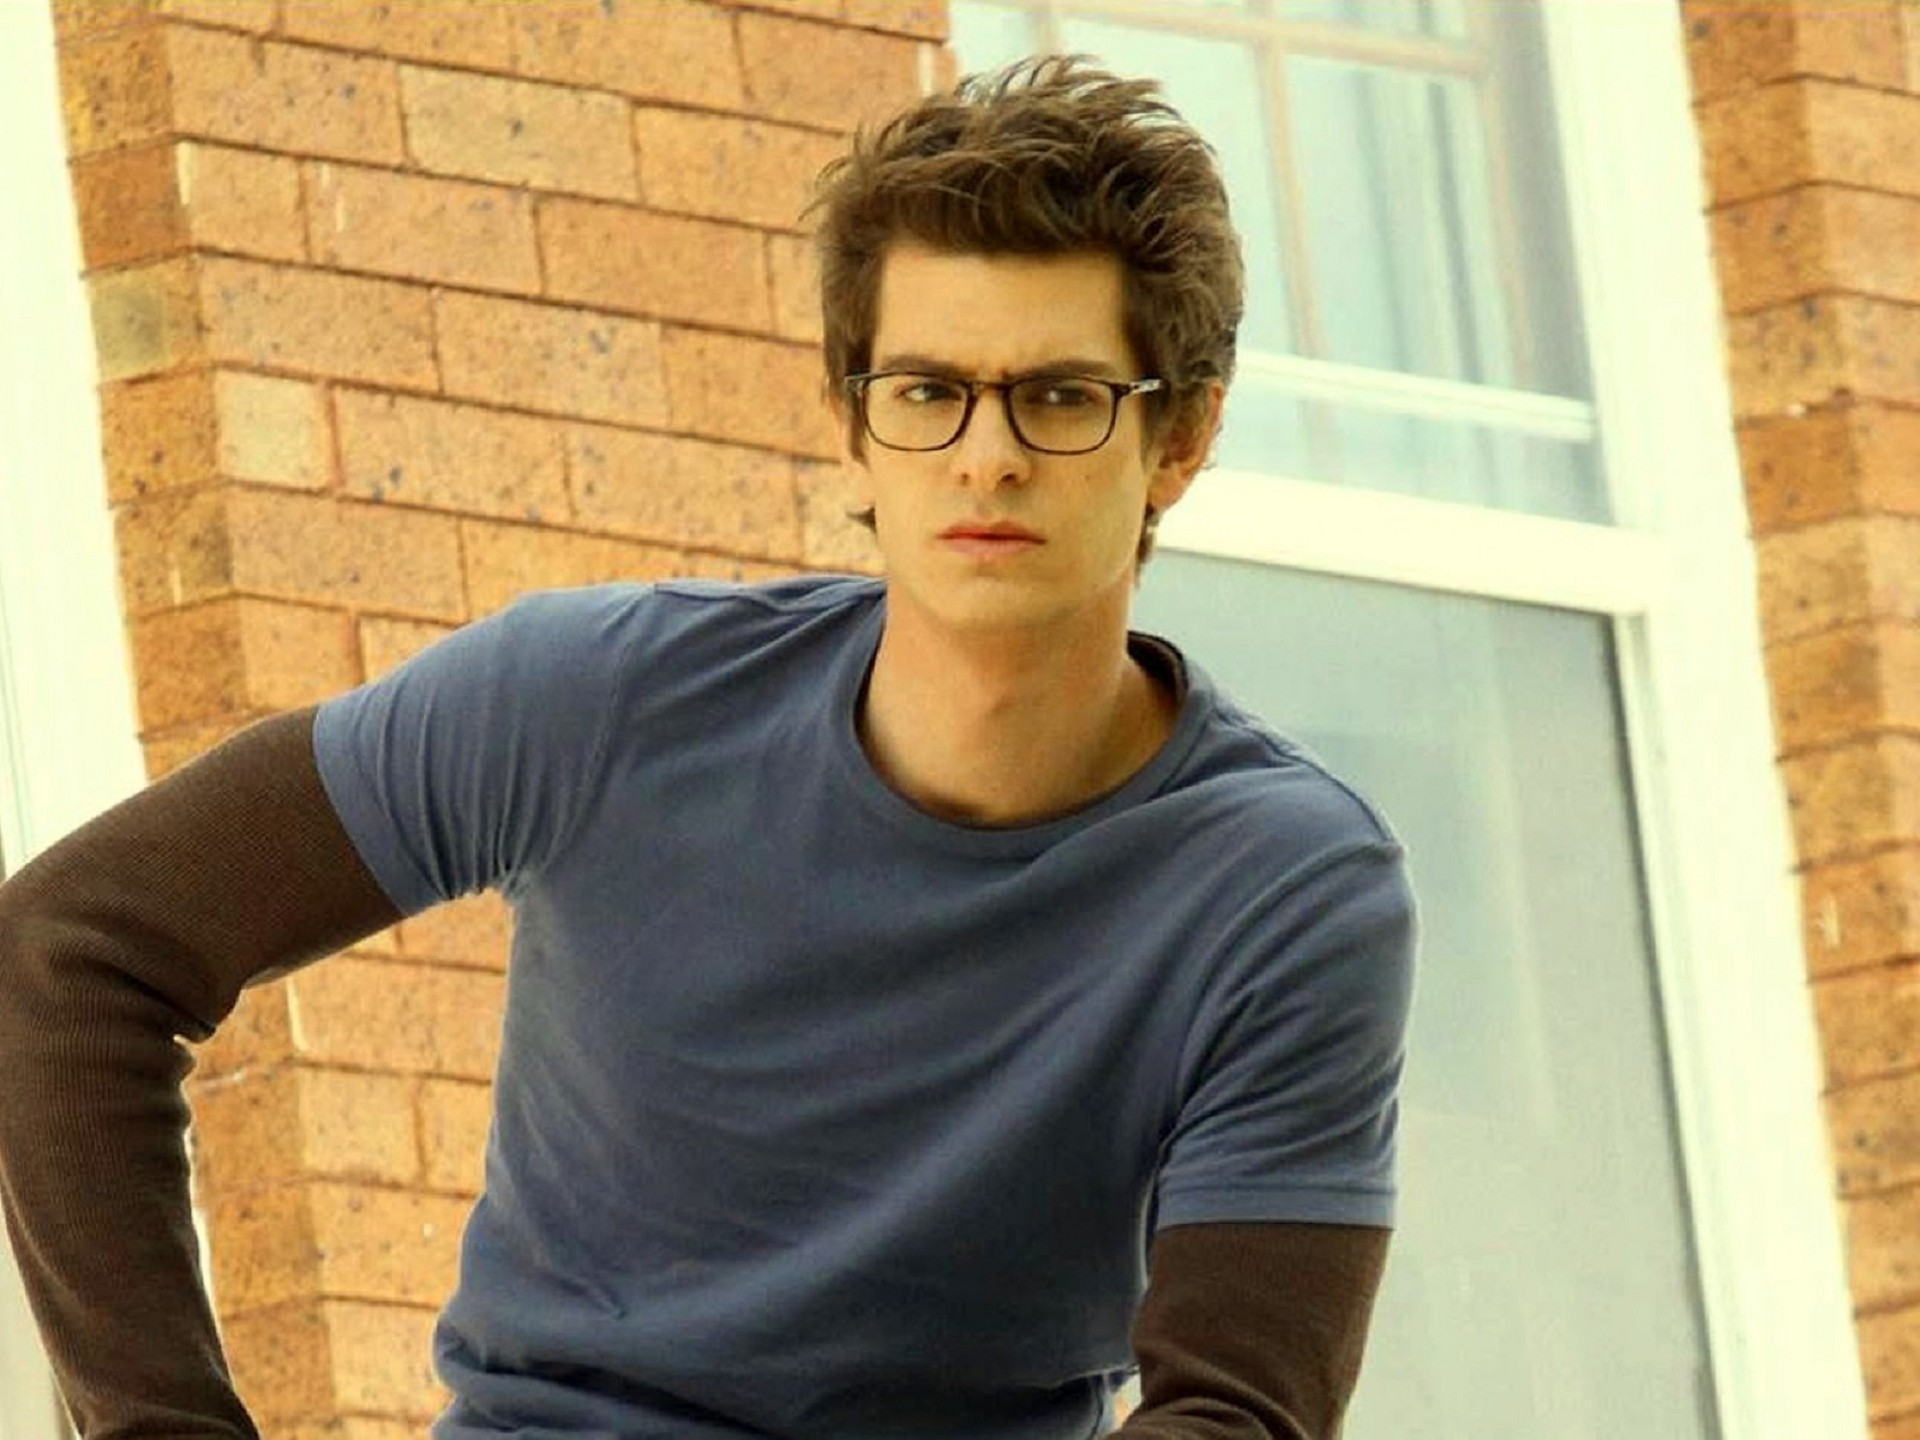 1920x1440 Andrew Garfield High Quality Wallpapers